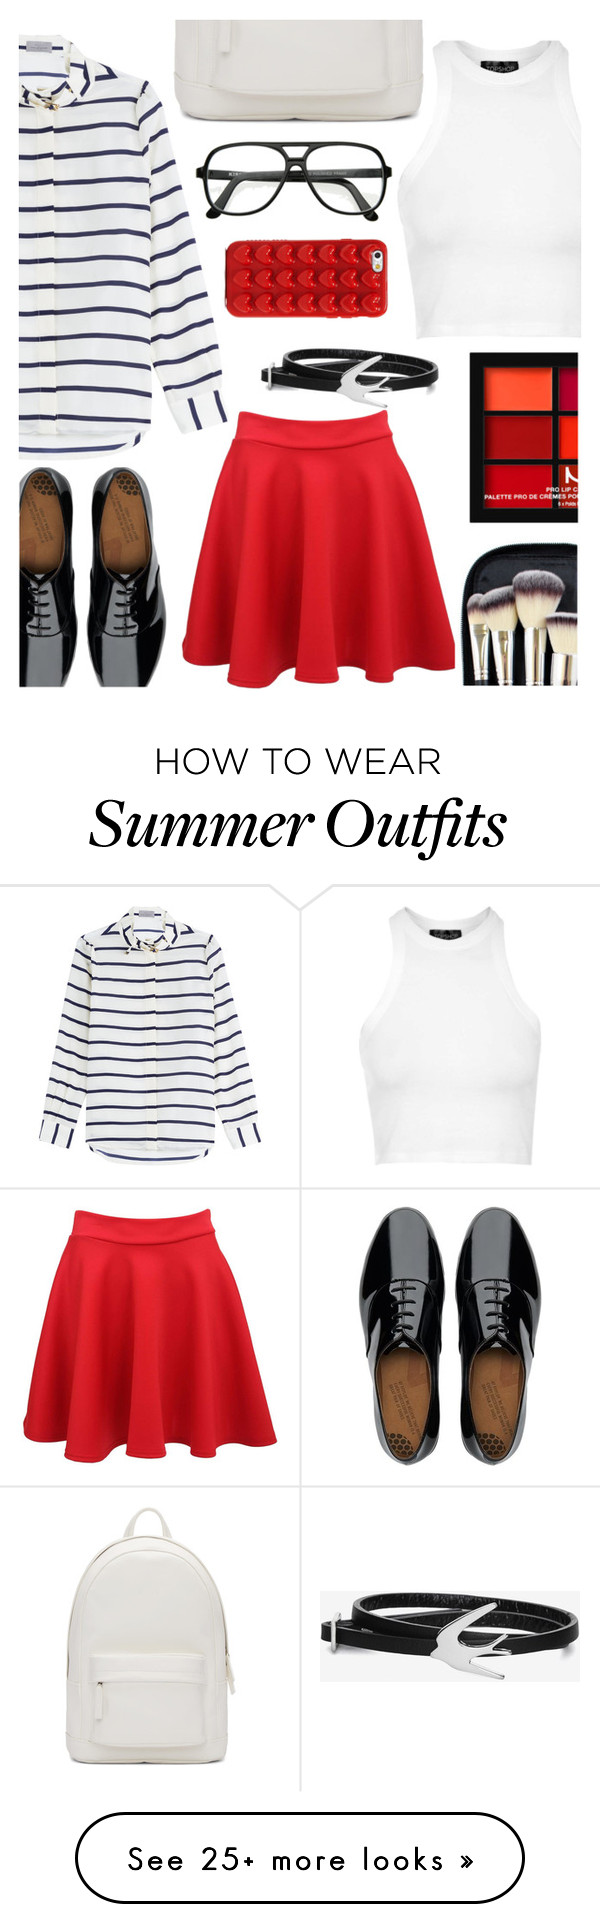 """""""summer outfit #8"""" by nicholas-the-third on Polyvore featuring Preen, Pilot, Topshop, FitFlop, PB 0110, Morphe, Marc Jacobs and McQ by Alexander McQueen"""